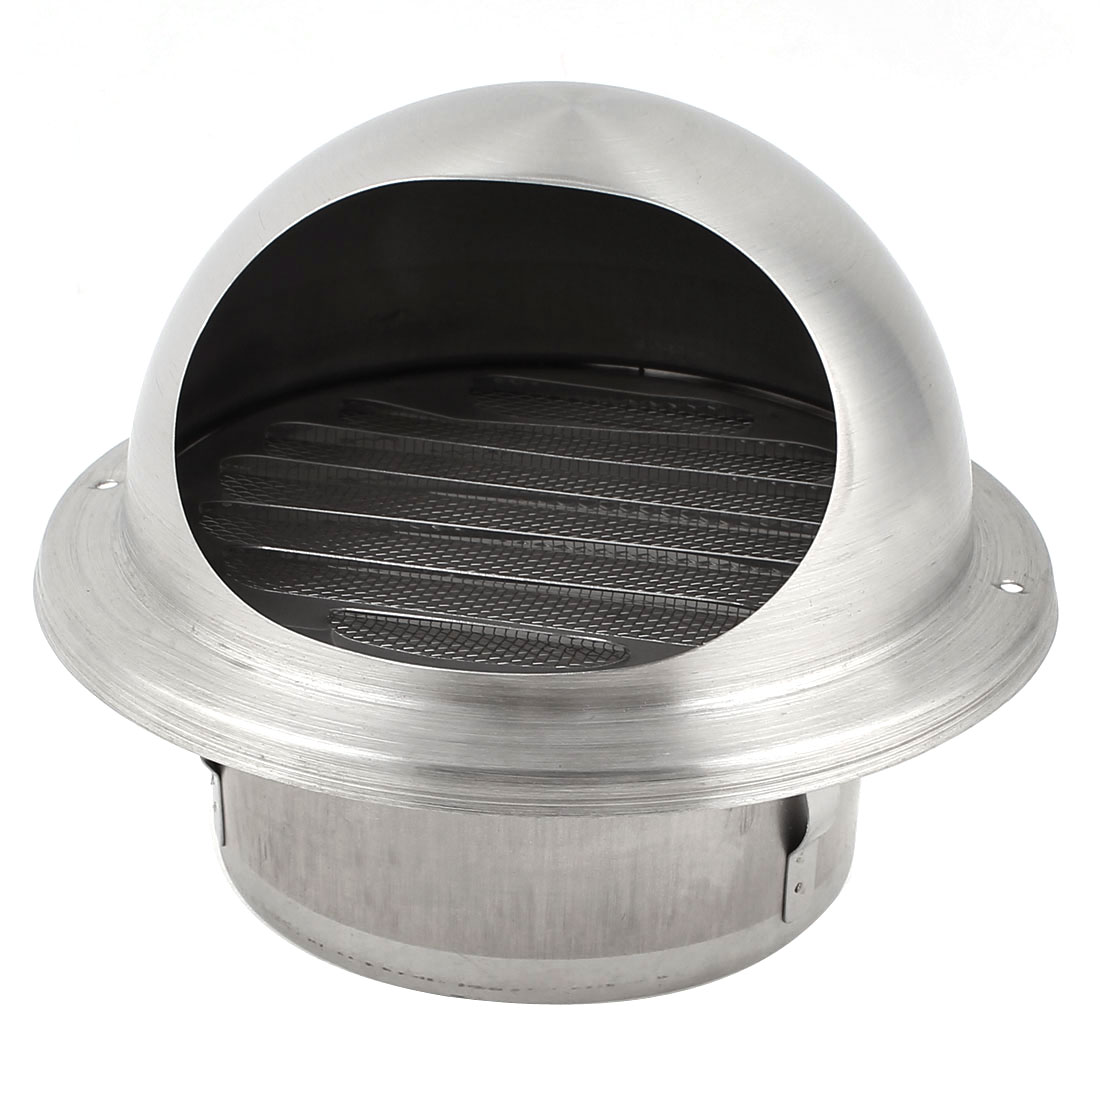 Silver Tone 100mm Outer Dia Stainless Steel Air Grilles Vent Valve